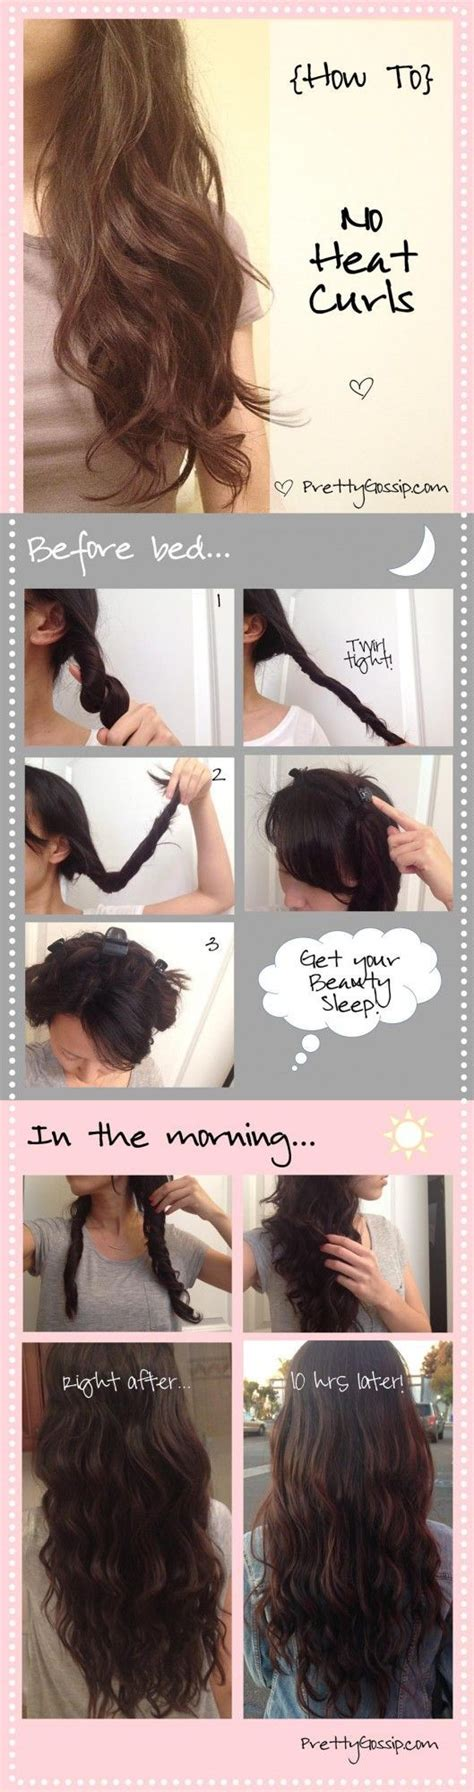 heatless hairstyles buzzfeed easy hairstyles tutorials easy hairstyles and hairstyle